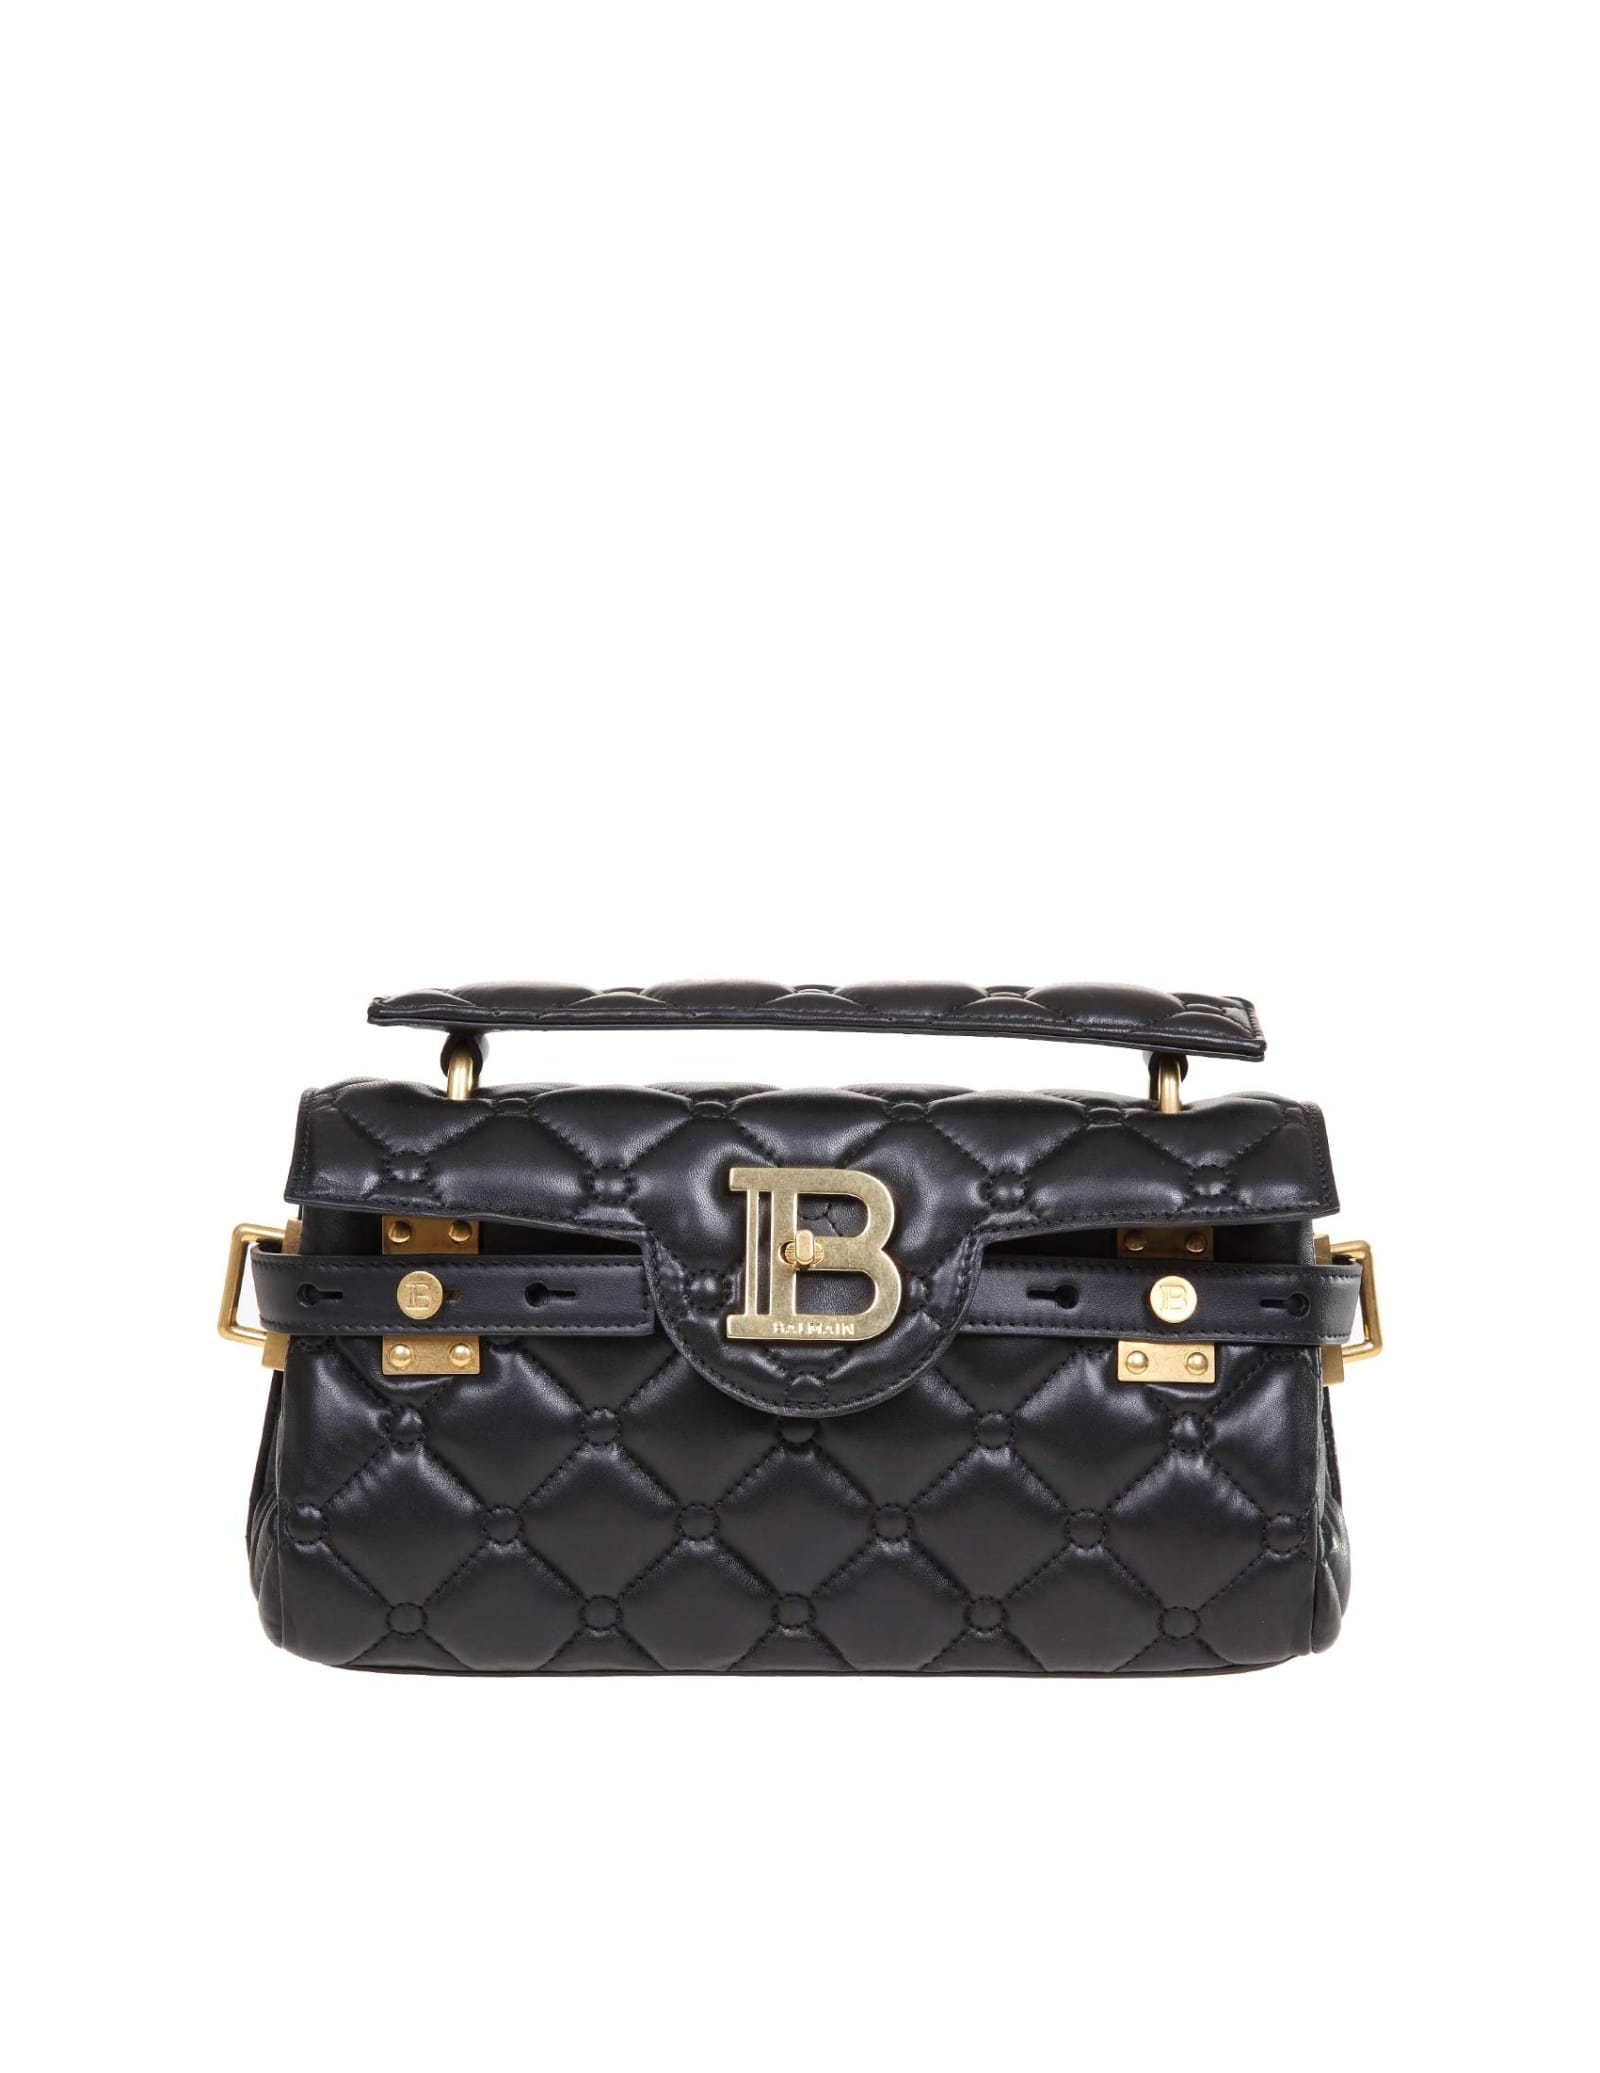 BALMAIN BBUZZ BAGUETTE B-BUZZ 26 IN BLACK QUILTED LEATHER